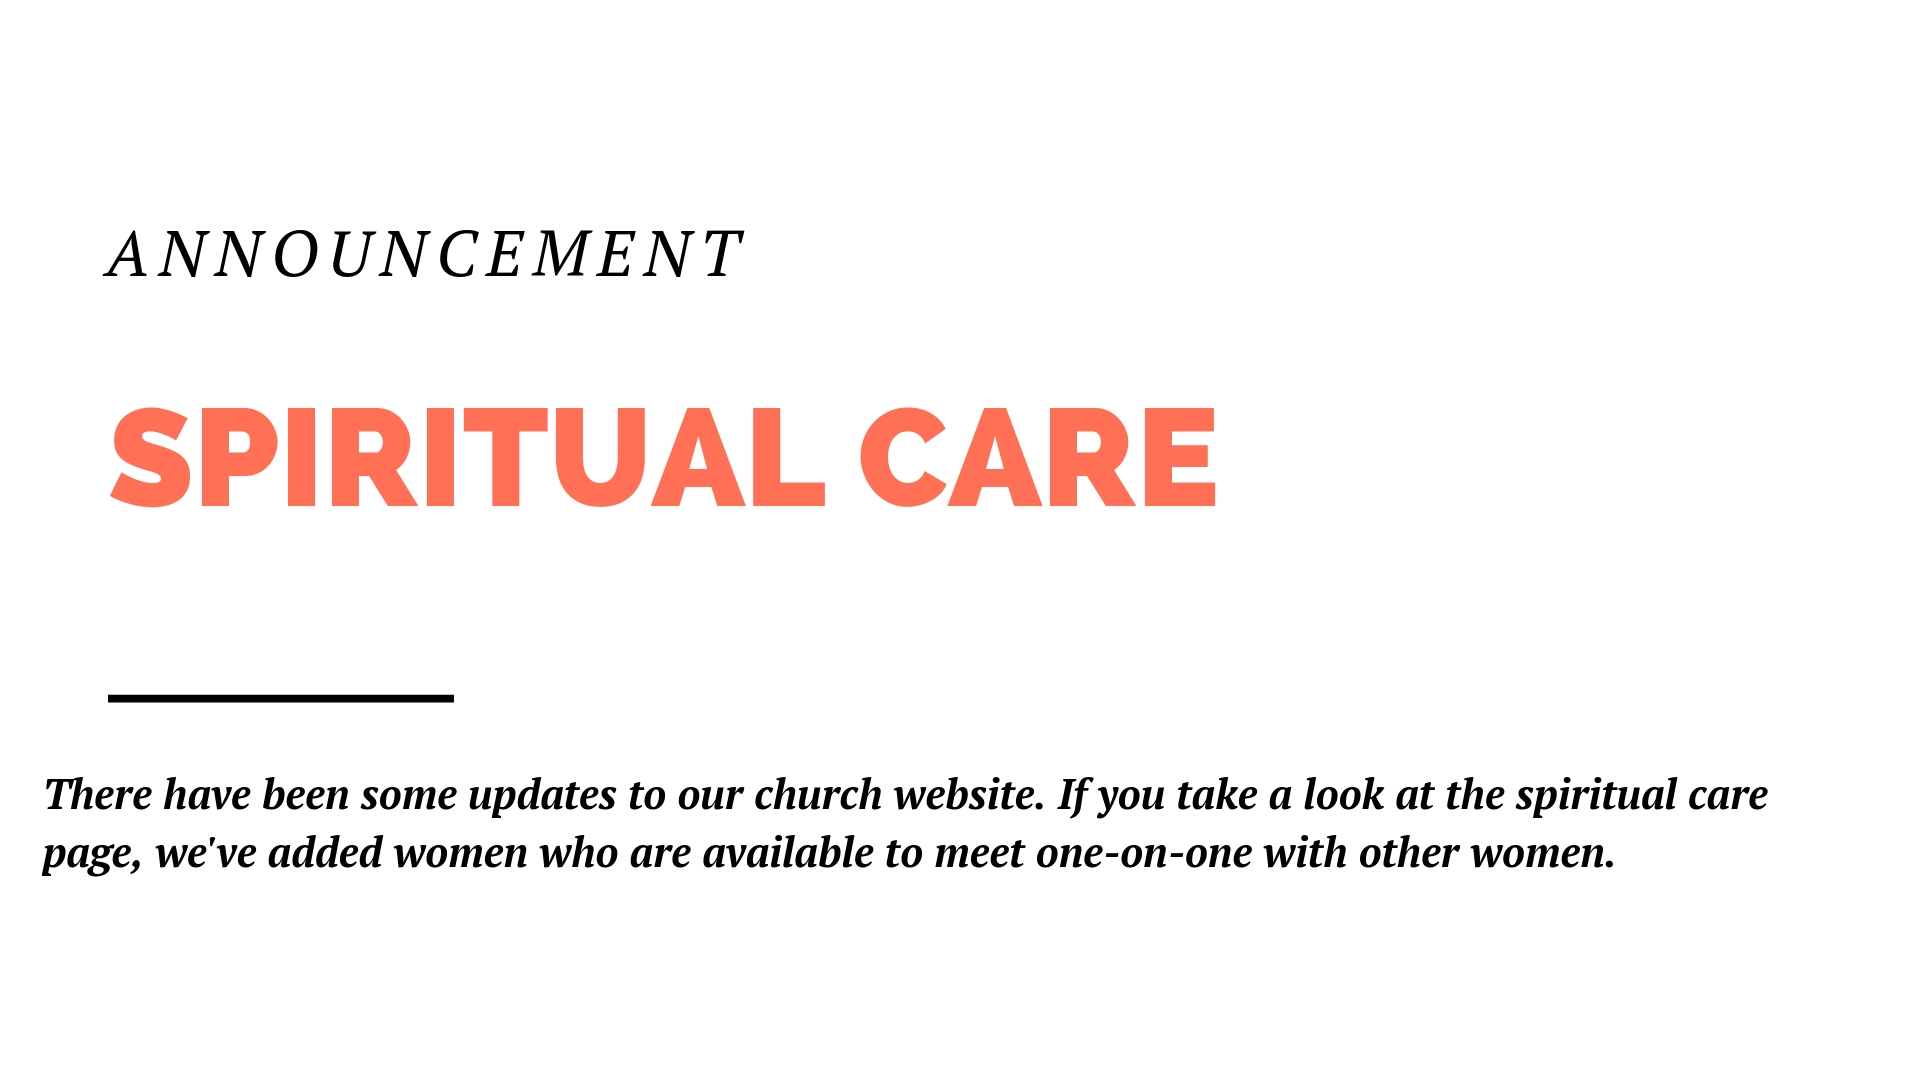 There have been some updates to our church website. If you take a look at the spiritual care page, we've added women who are available to meet one-on-one with other women. Please feel free to reach out as needed.